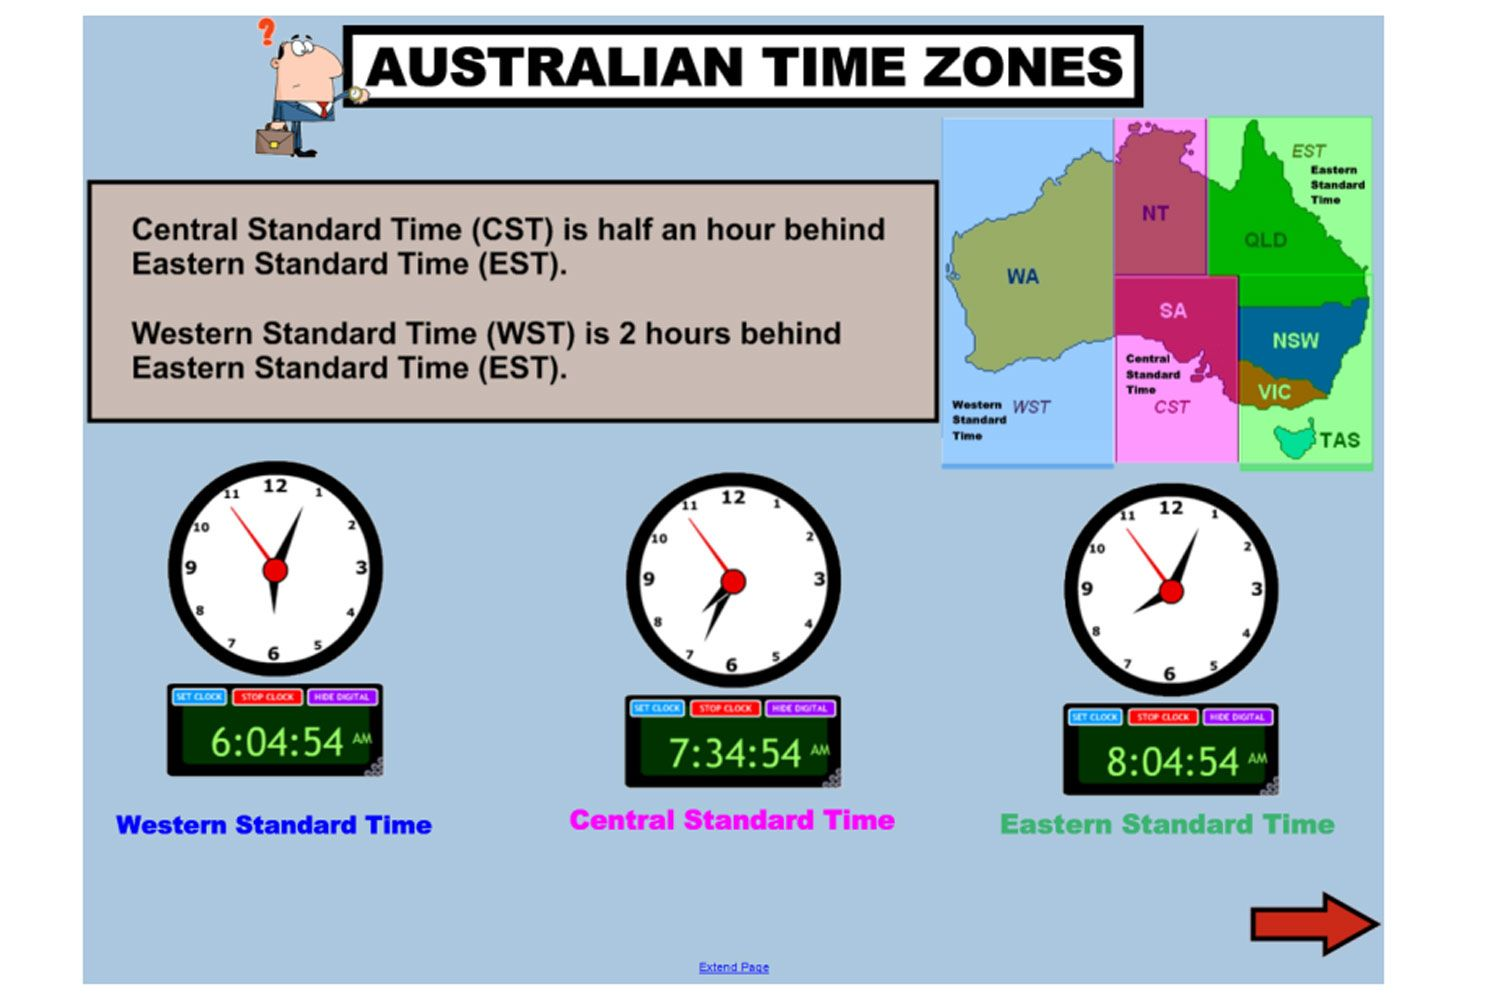 medium resolution of Learn all about Australian Time Zones and Daylight Saving Time with this  terrific IWB lesson. http://interactivelesso…   Year 6 maths